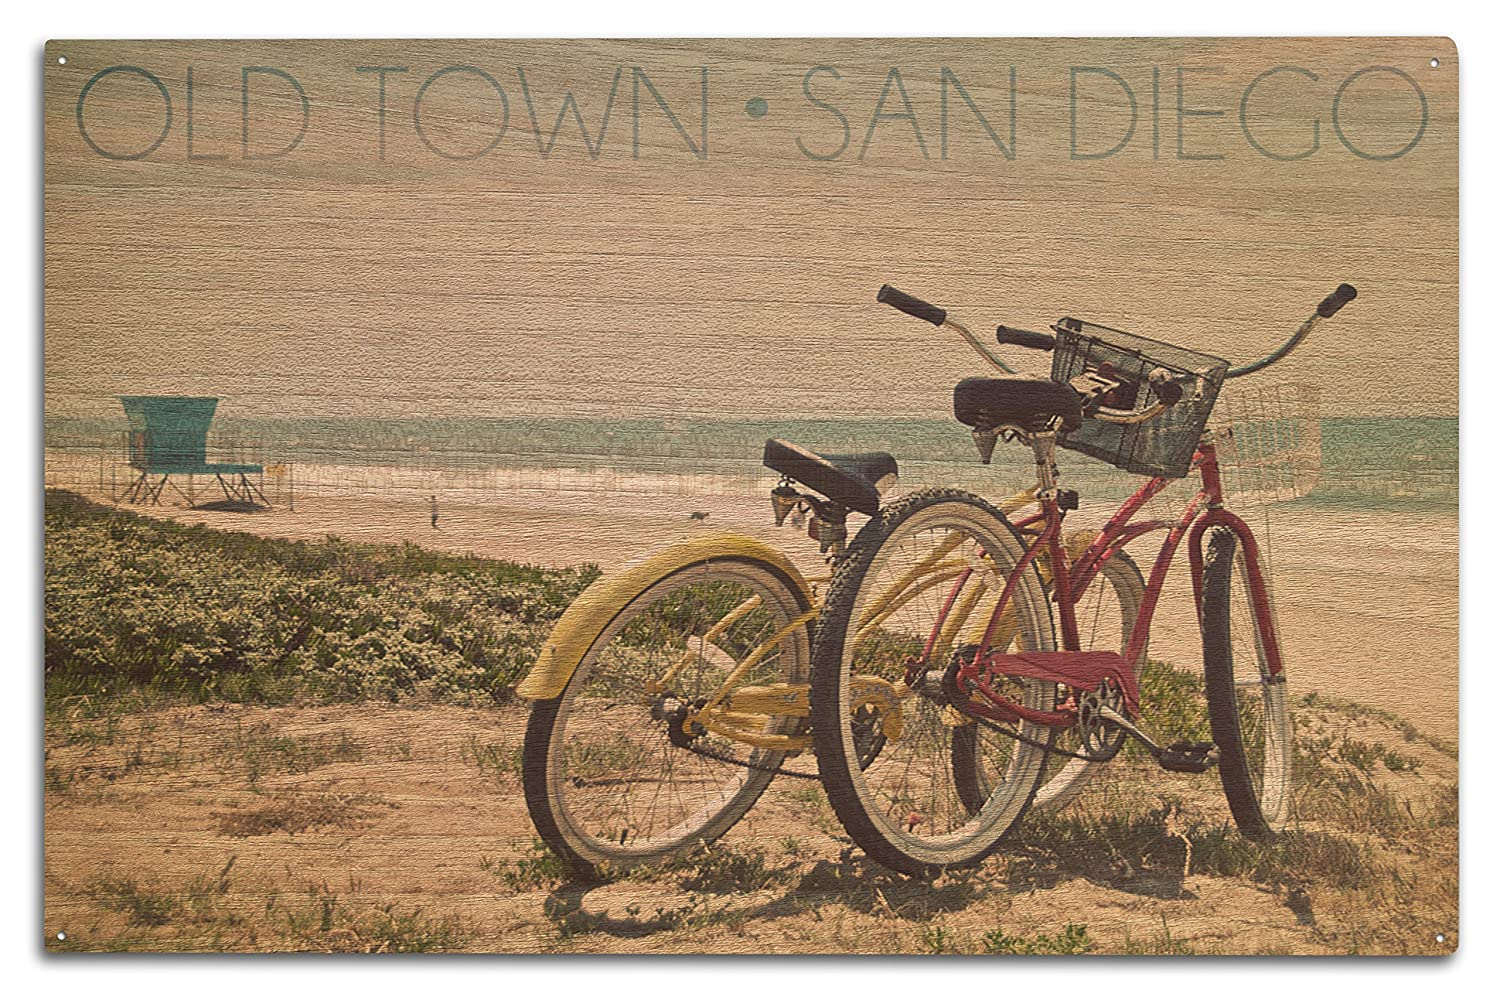 超人気新品 Old Town – サンディエゴ、カリフォルニア州 15 – Bicyclesとビーチシーン Sign 10 x Wood 15 Wood Sign LANT-55195-10x15W B07366T1WF 10 x 15 Wood Sign, Millky Way Shop:9eaff35a --- arianechie.dominiotemporario.com